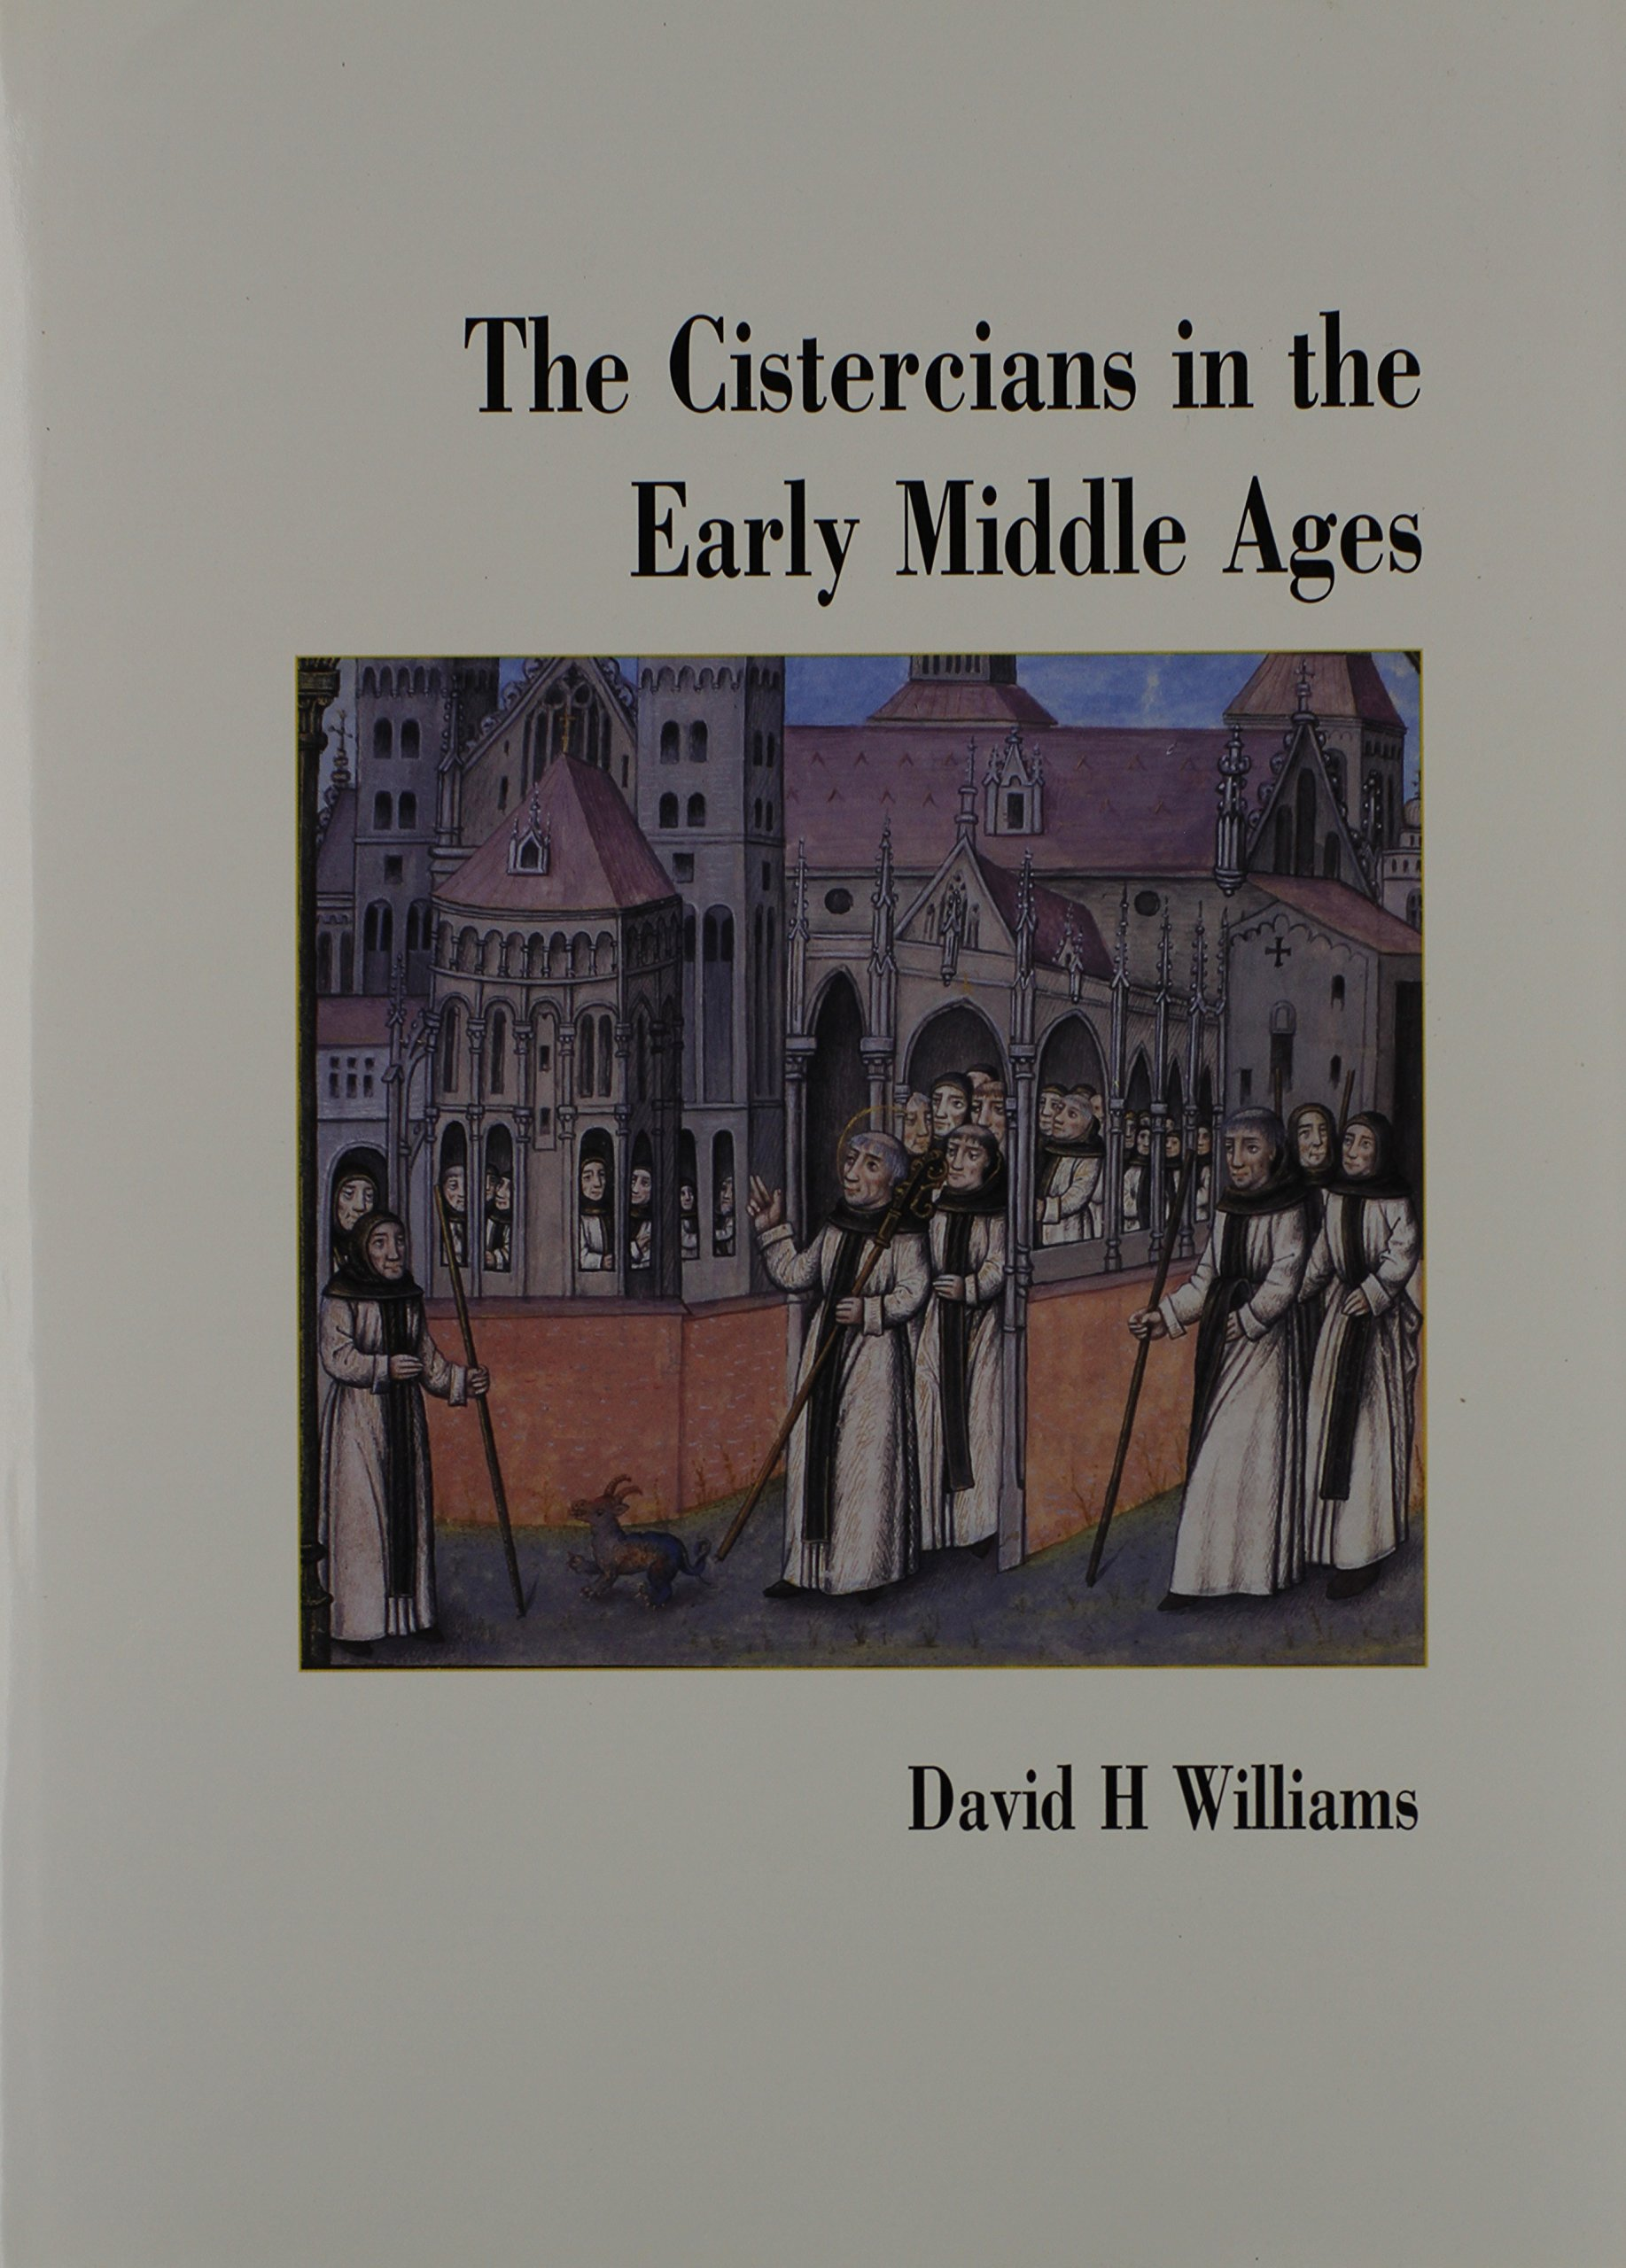 The Cistercians in the Early Middle Ages: Written to Commemorate the Nine Hundredth Anniversary of Foundation of the Order at Citeaux in 1098 Under the Patronage of Blessed Vincent Kadlubek Text fb2 ebook